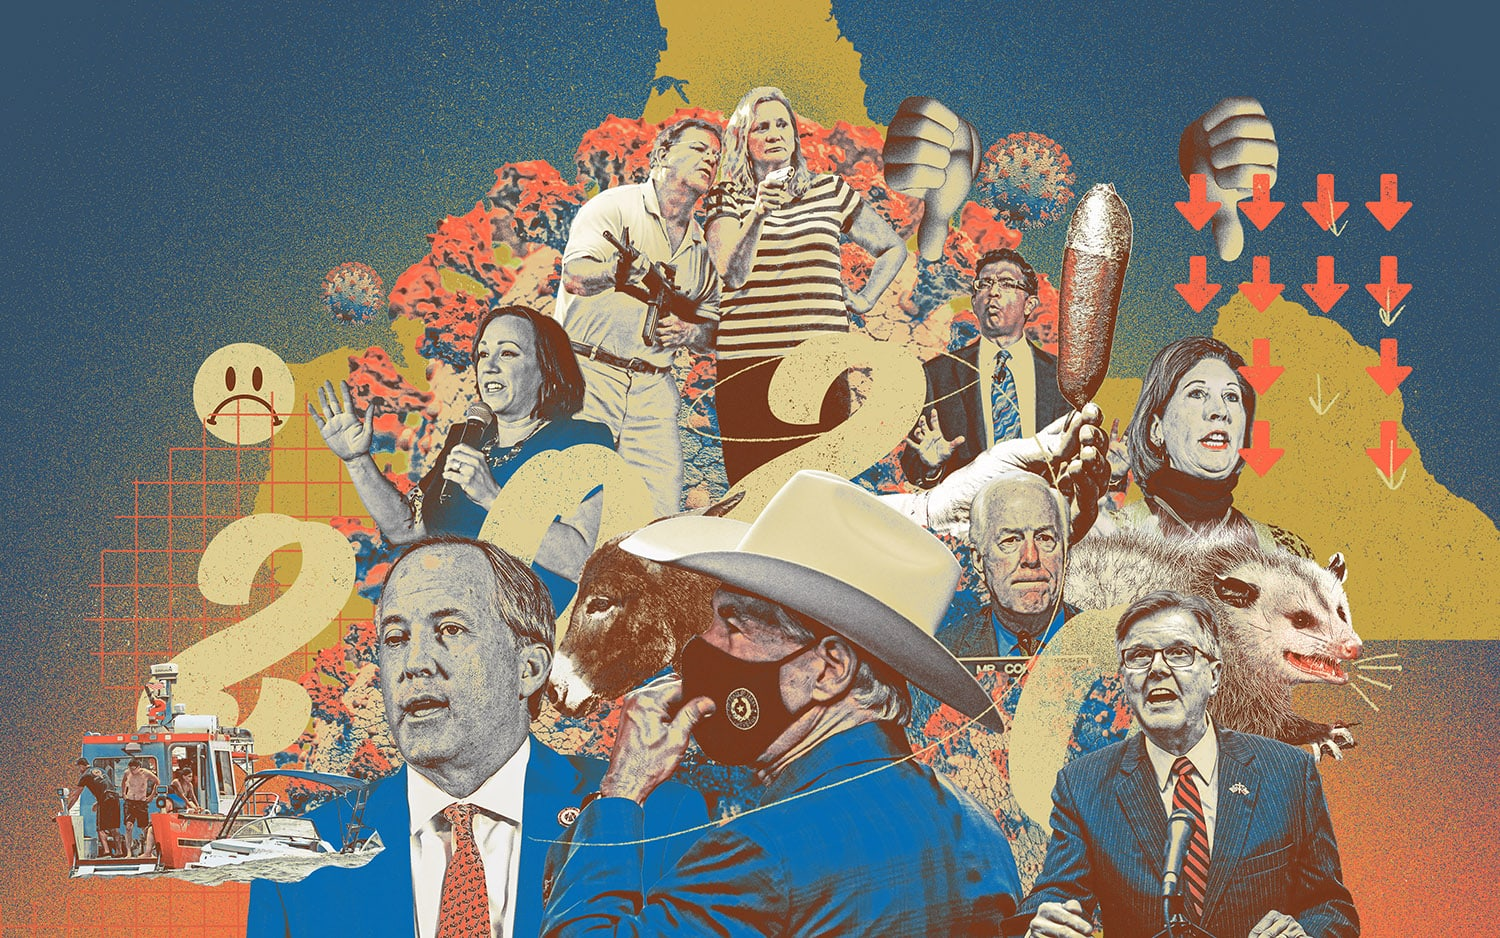 Max-o-matic: Texas Monthly: 2020 Best & Worst